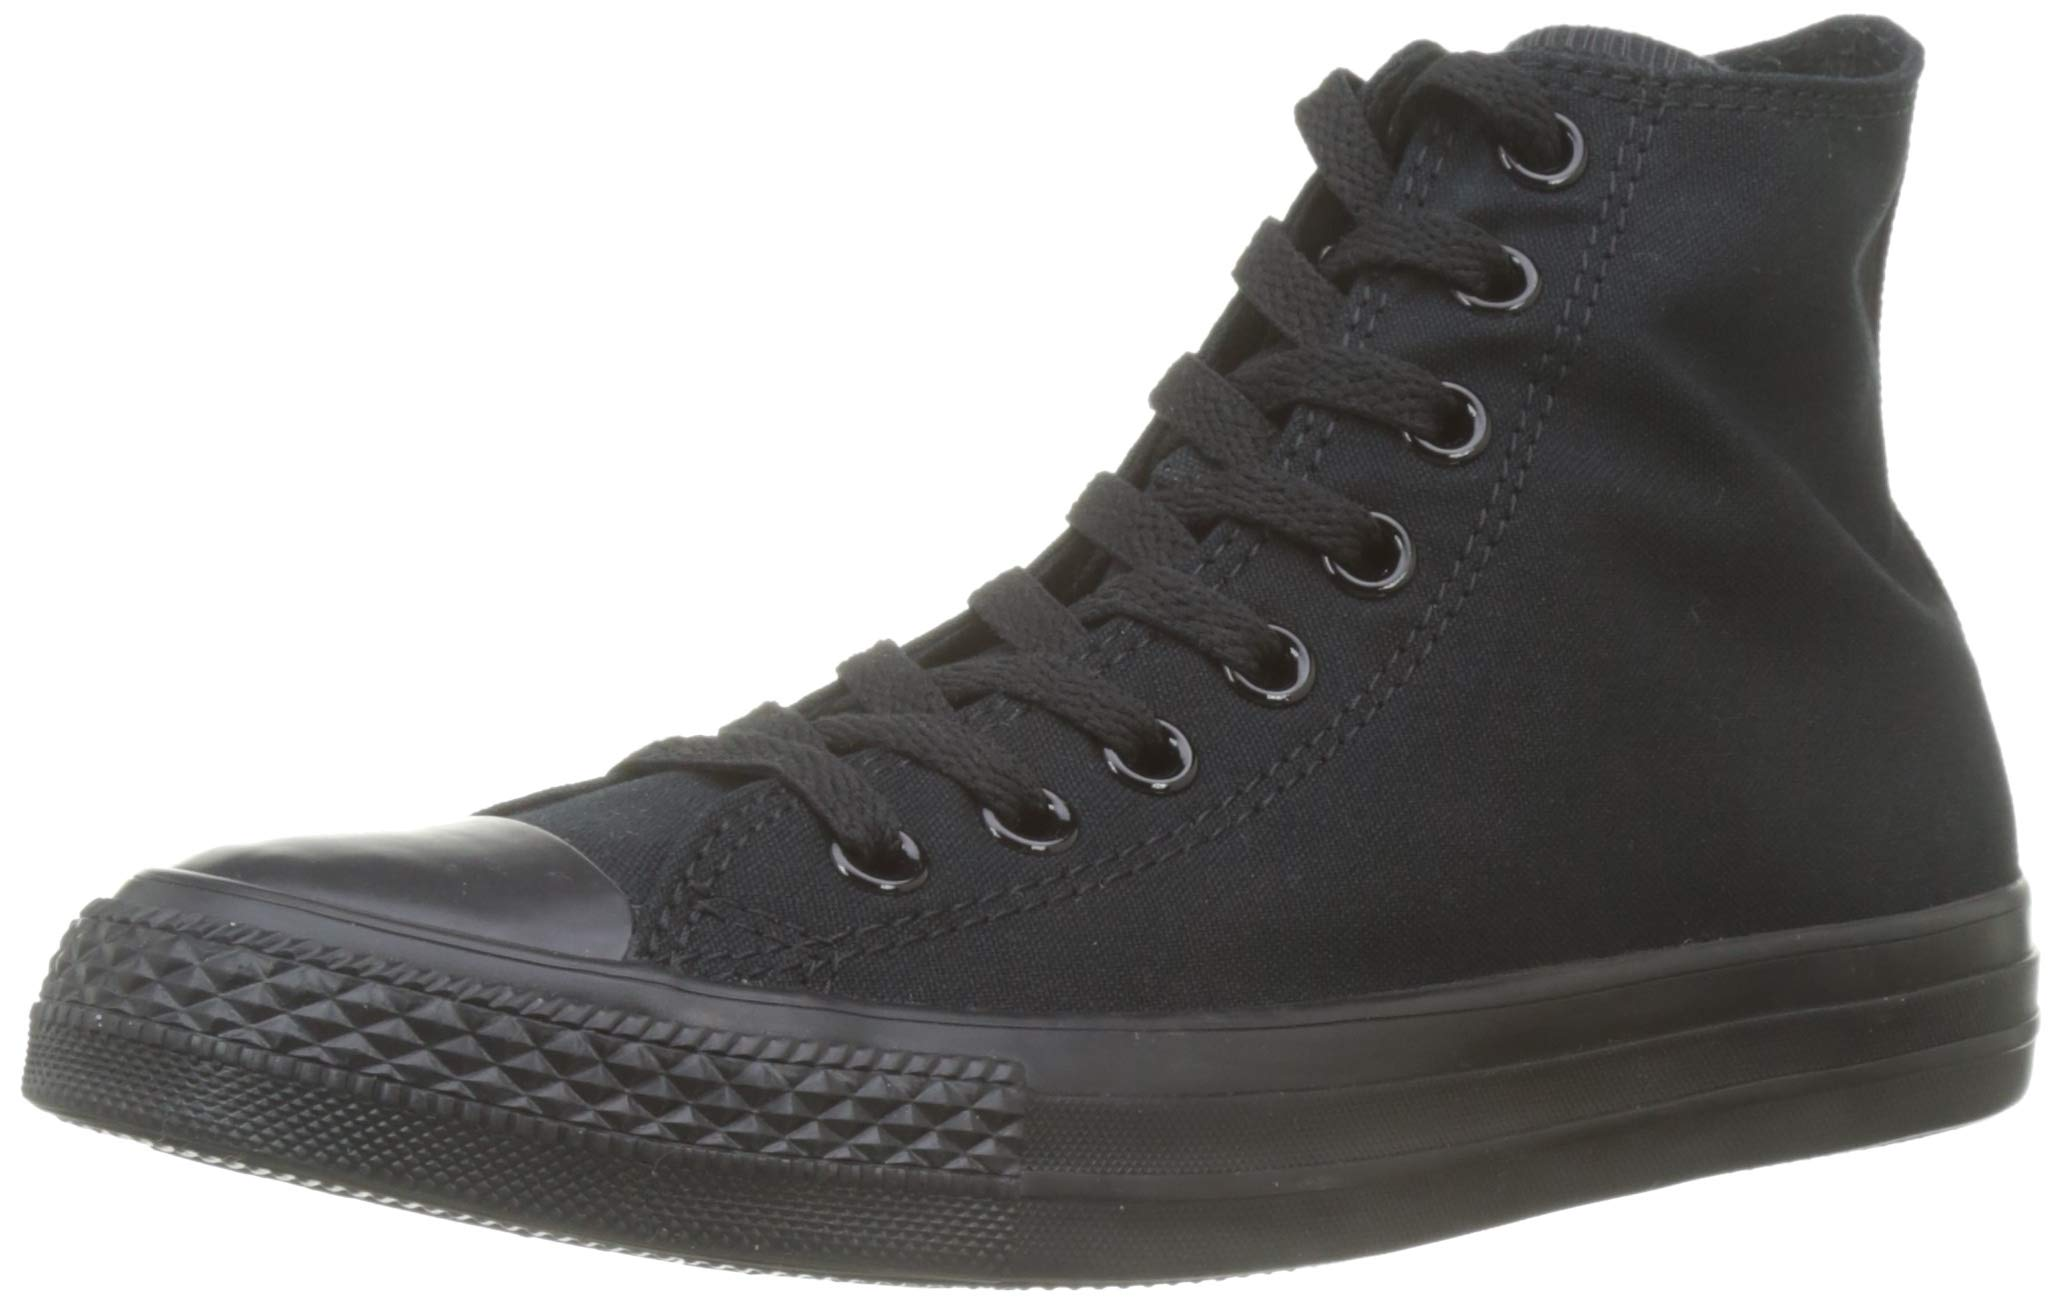 Converse Mens Chuck Taylor All Star High Top, 6 B(M) US Women / 4 D(M) US Men, Black Monochrome